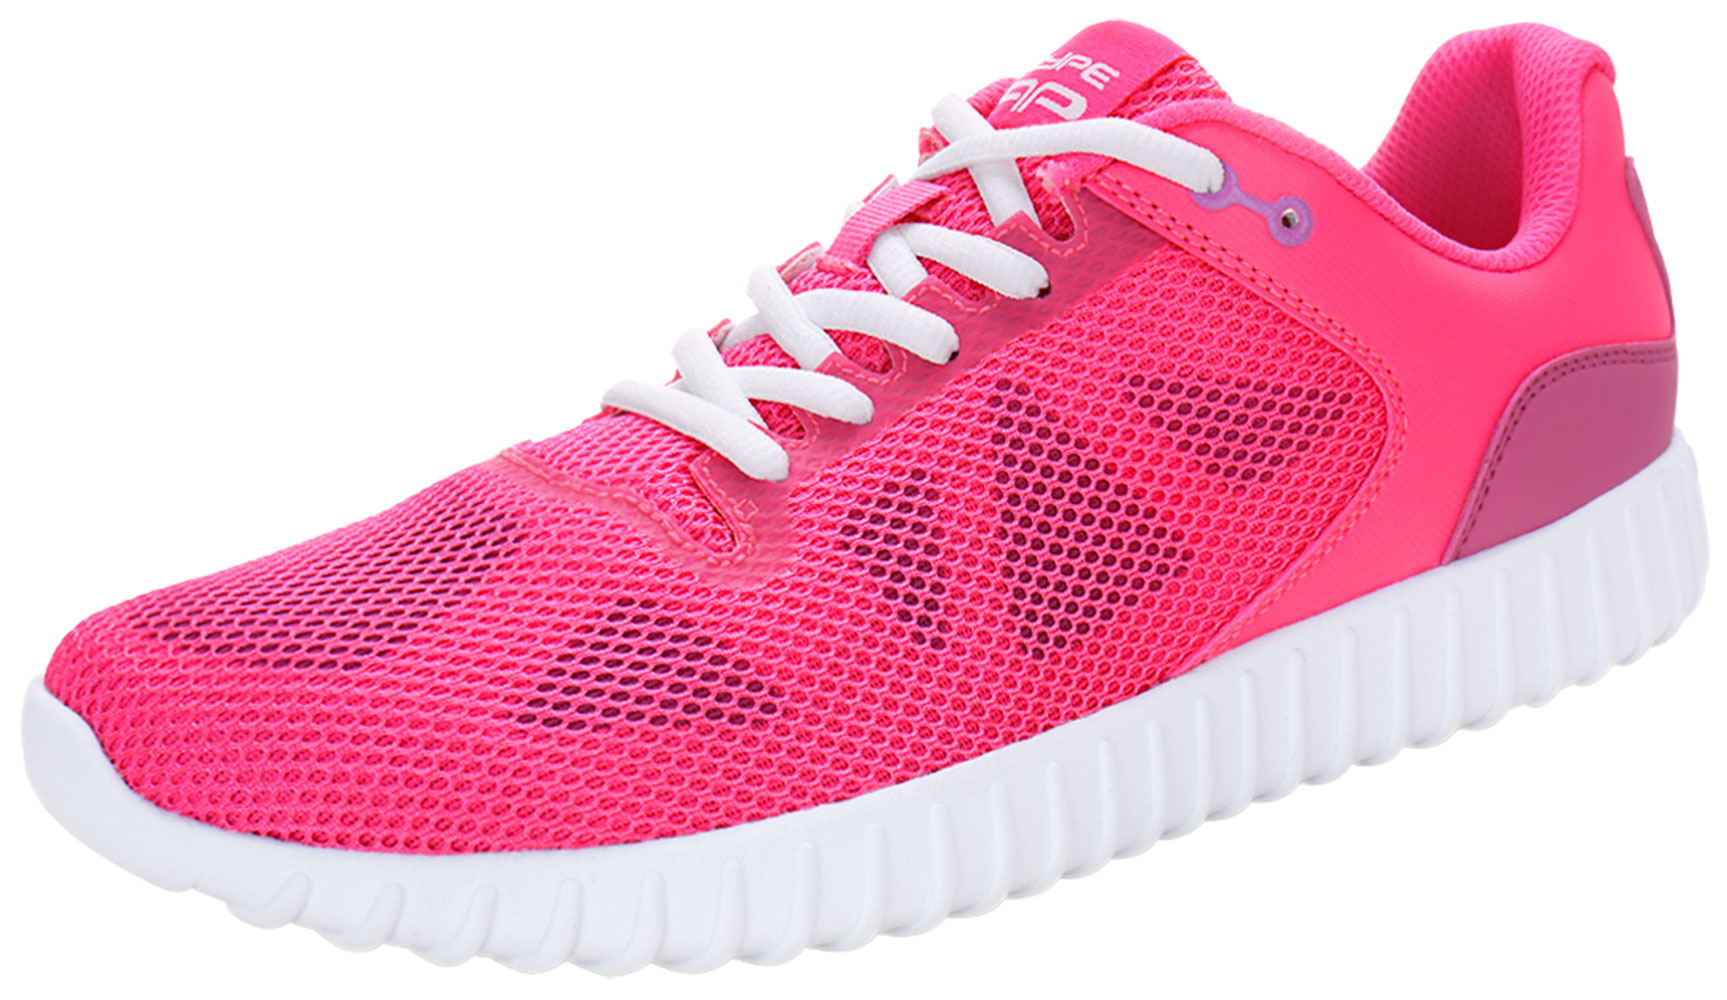 PYPE Women Geometric Prints Lace Up Mesh Training Shoes Pink US 8.5